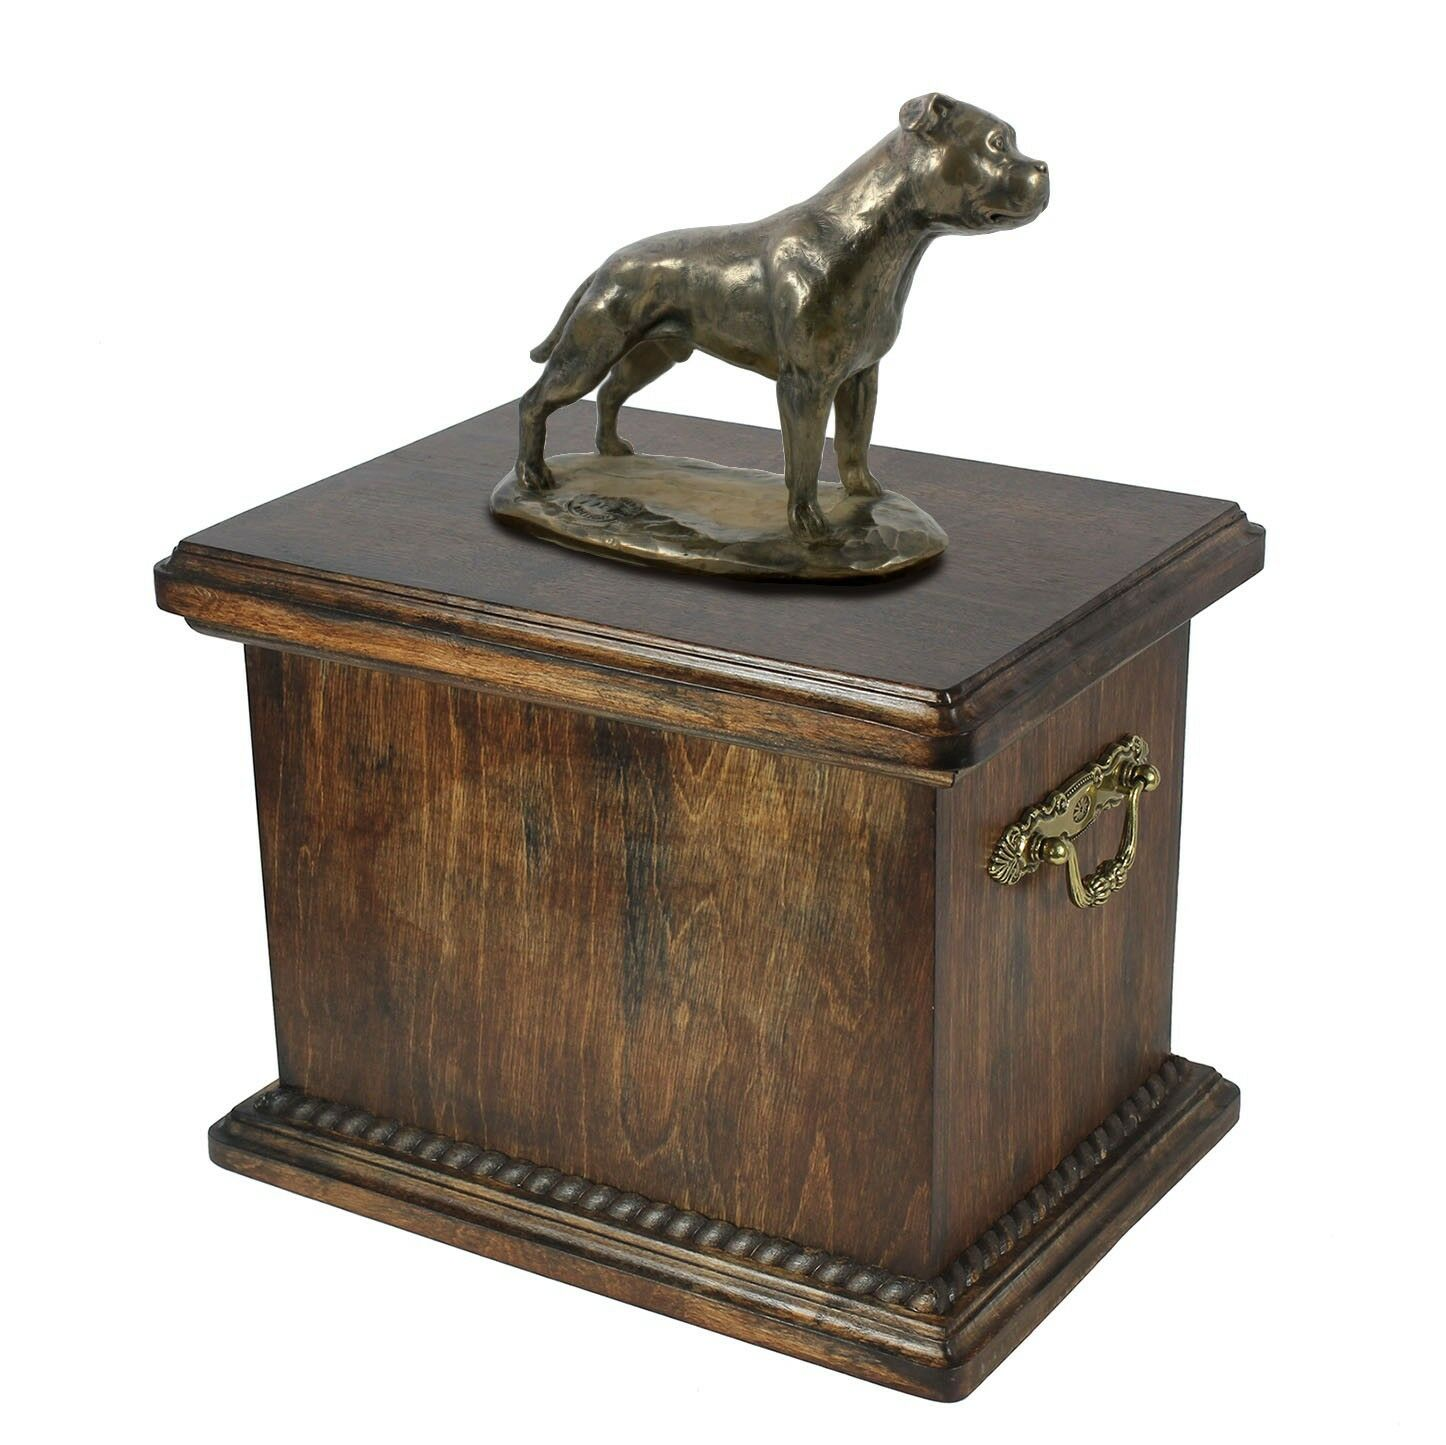 Staffordshire Bull Terrier type 4 - wooden urn with dog statue, Art Dog type 1